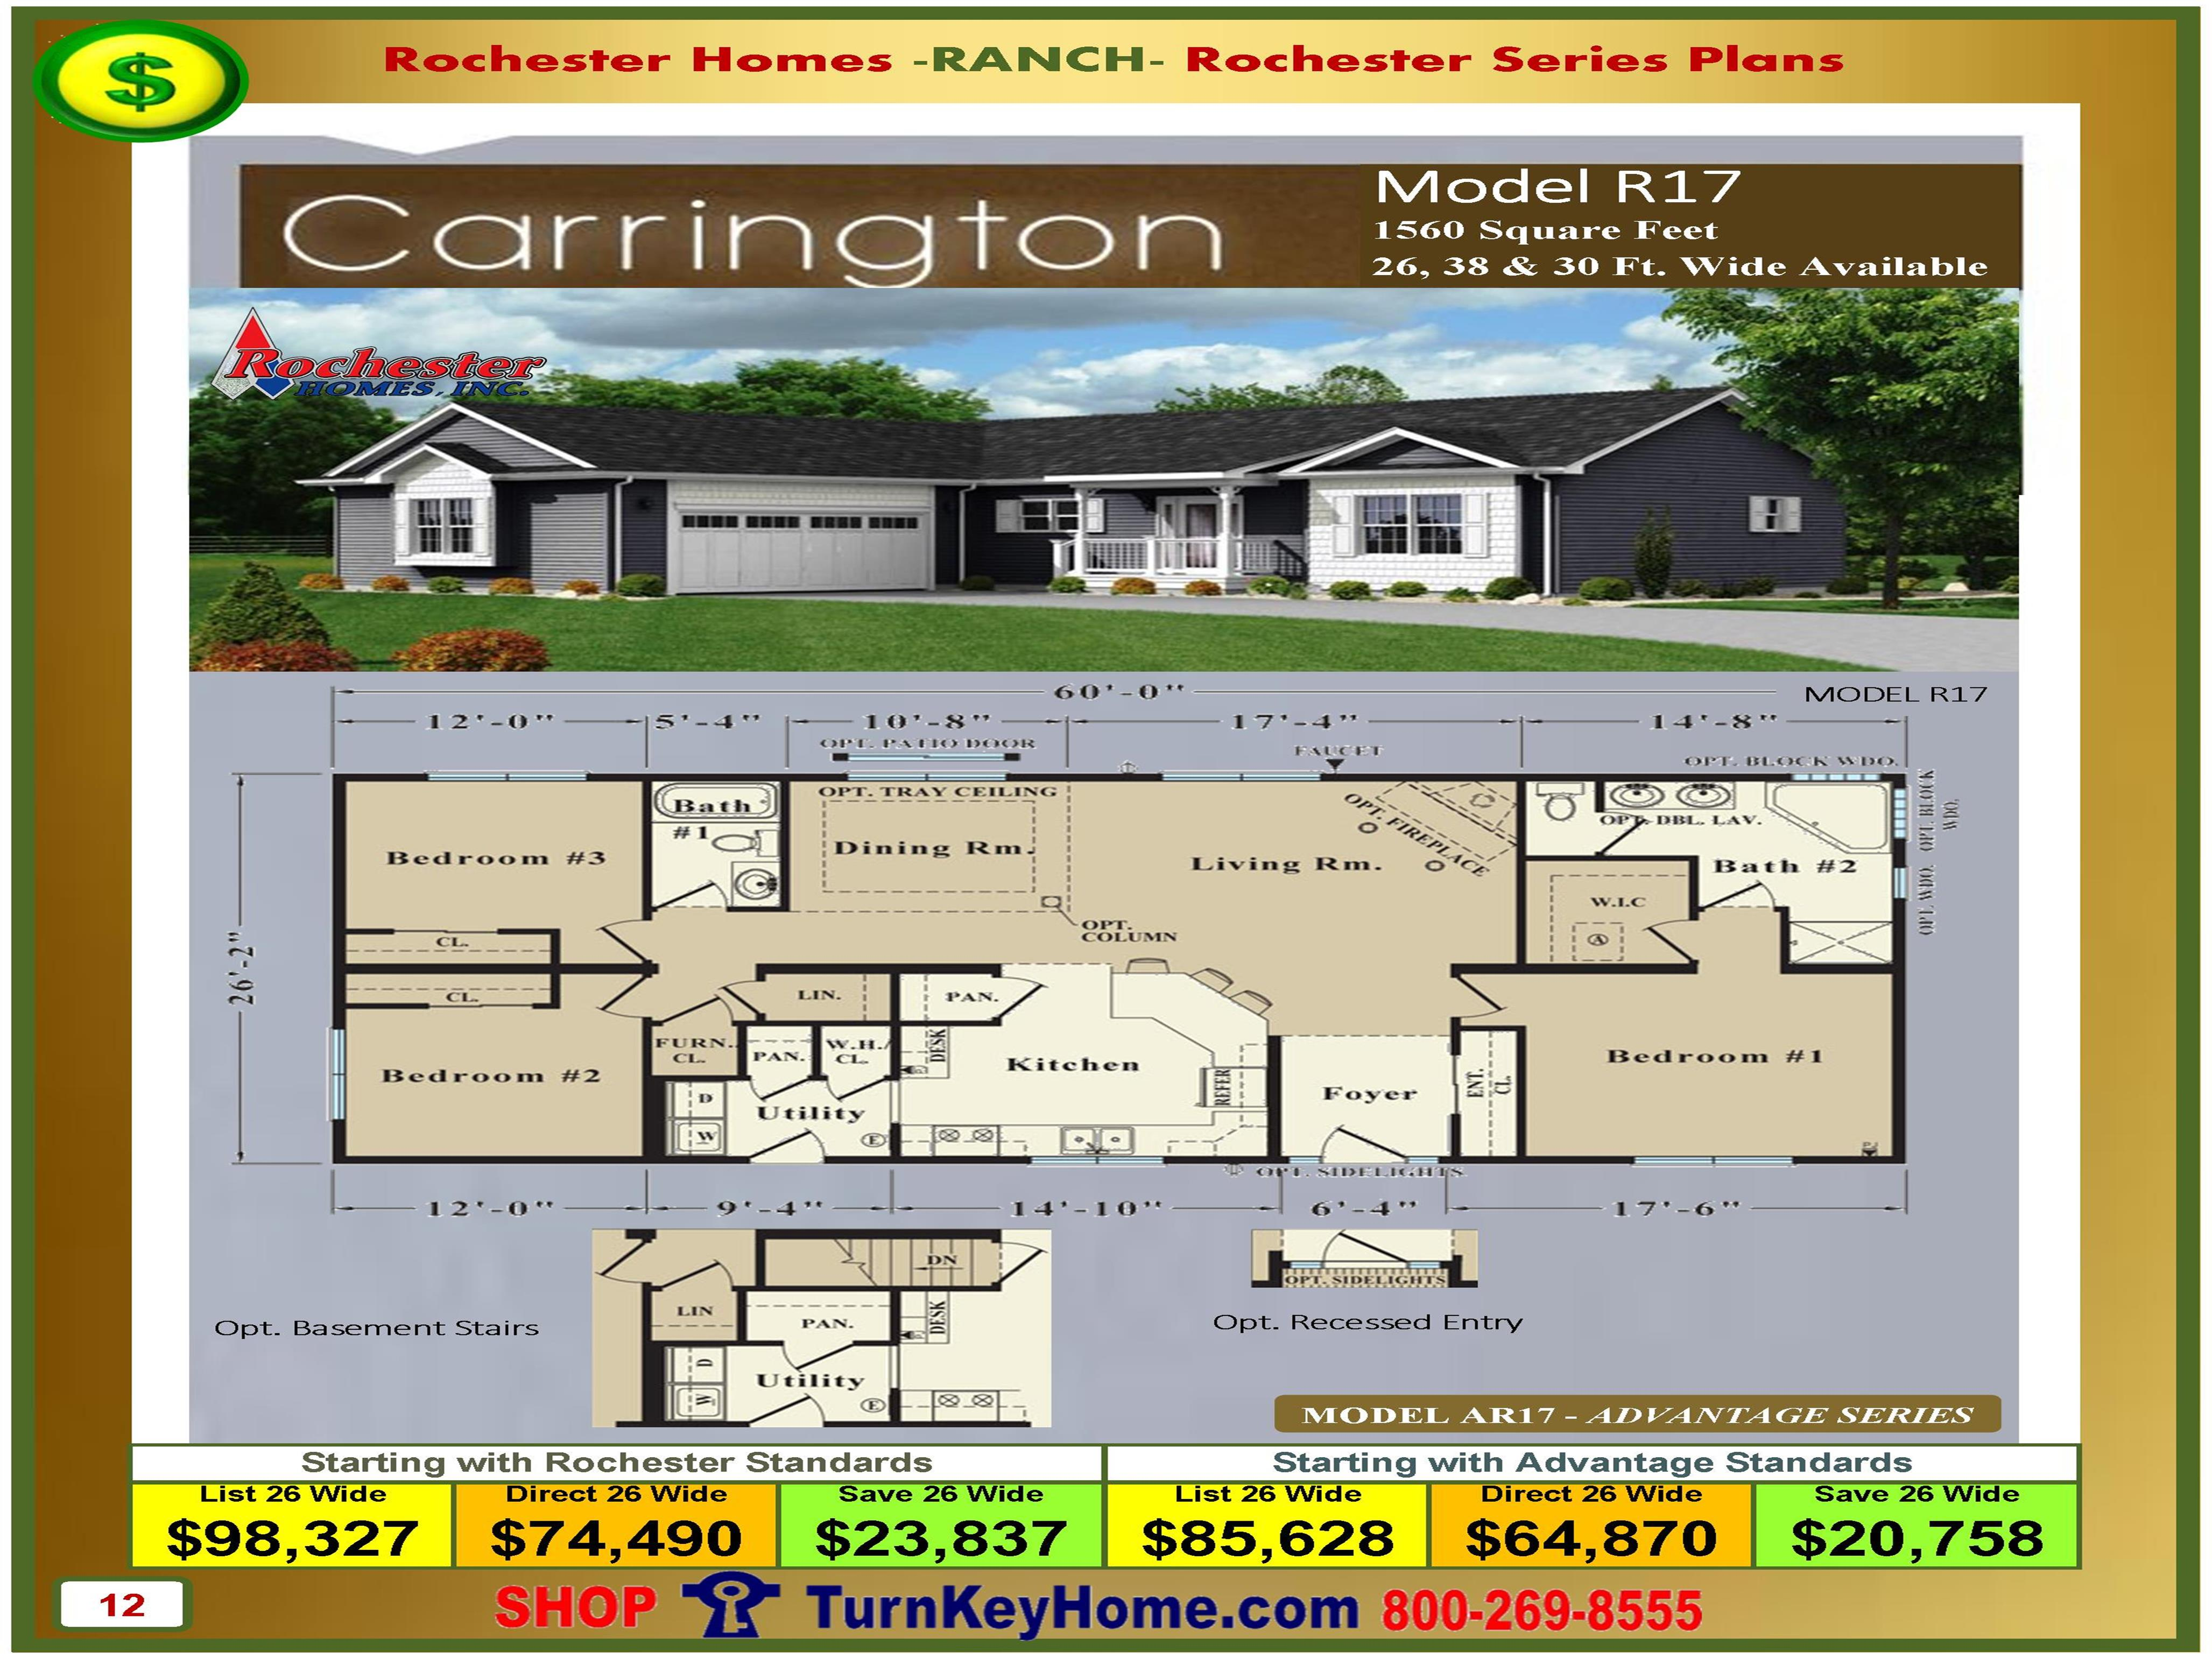 Mobile Home Plans And Prices carrington rochester modular home ranch model r17 plan price